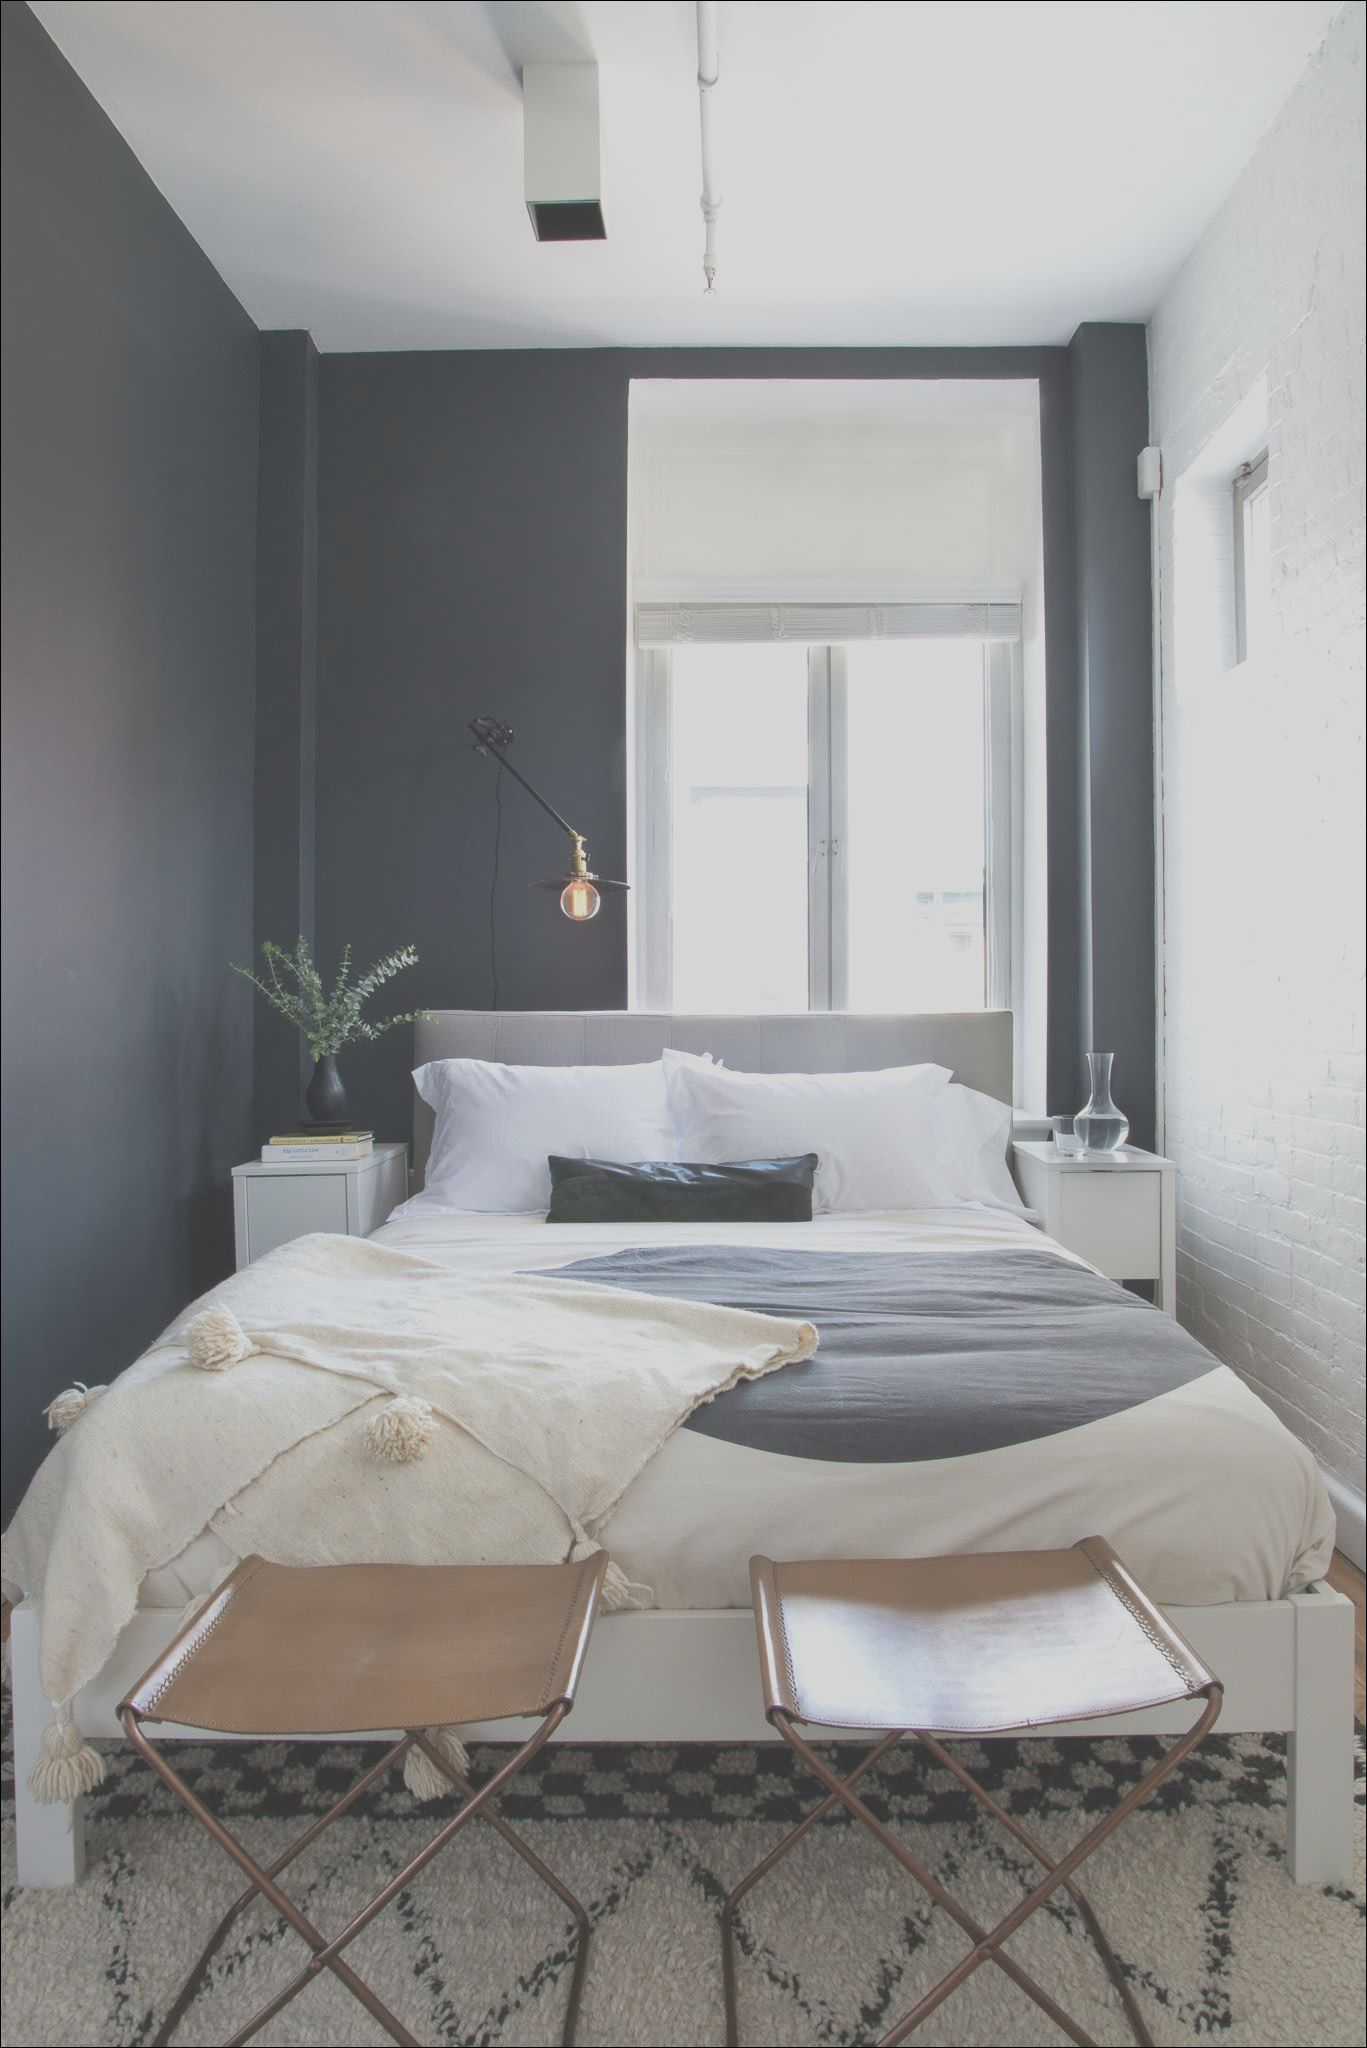 12 Adorable Bedroom Design Apartment Collection In 2020 Apartment Design Small Bedroom Affordable Bedroom